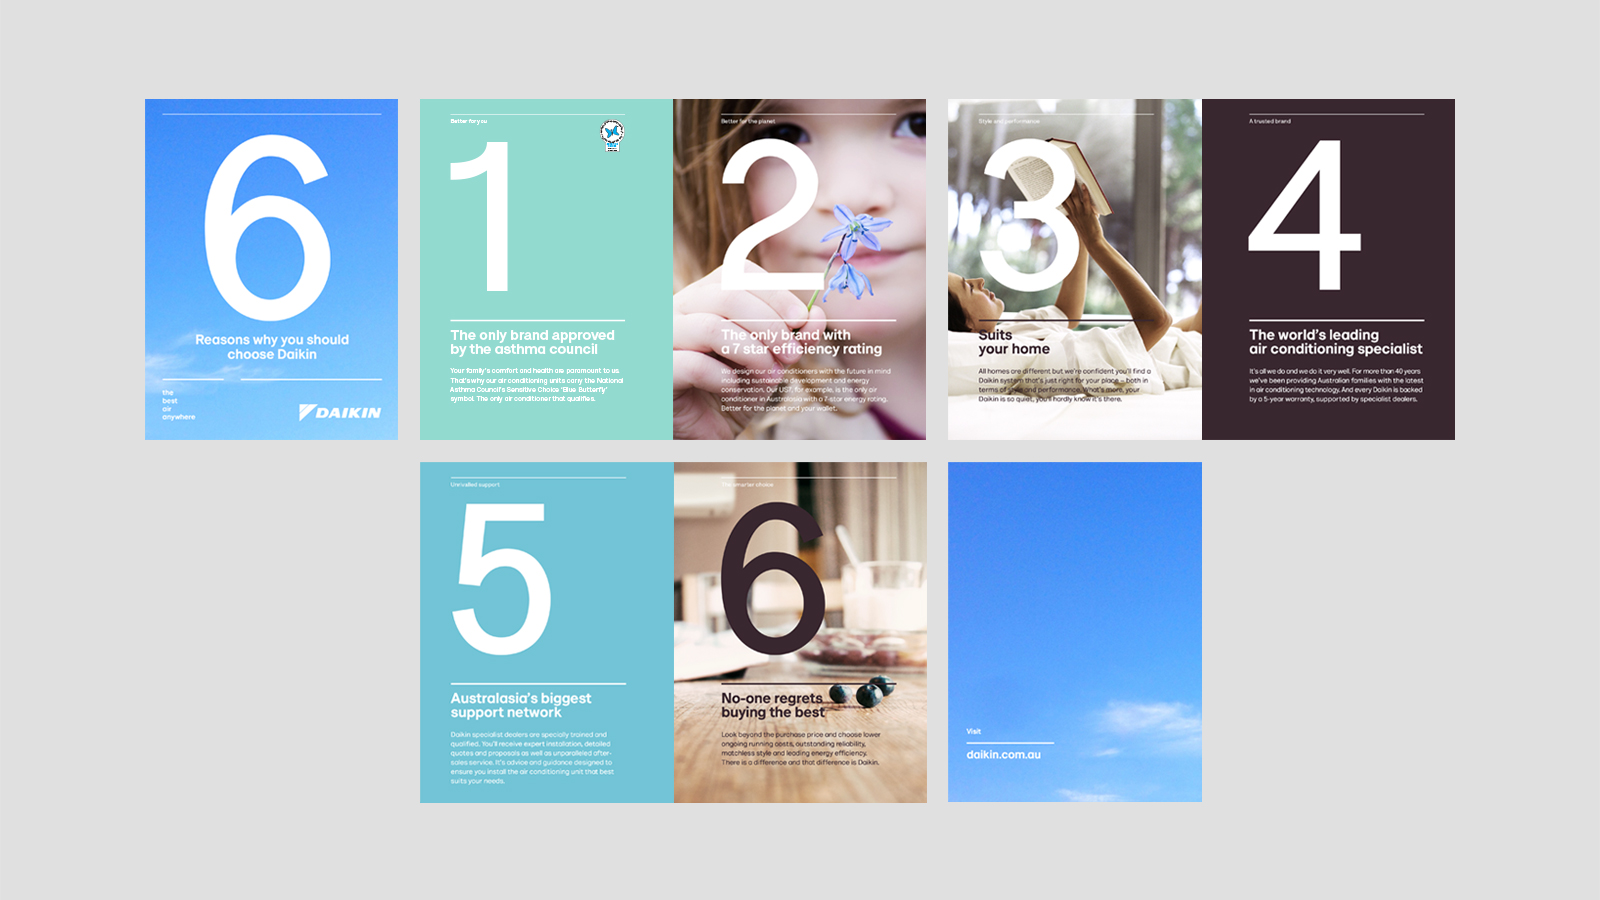 Daikin – 6 Reasons Why Brochure – features fresh, nature-inspired colour palette and emotive imagery